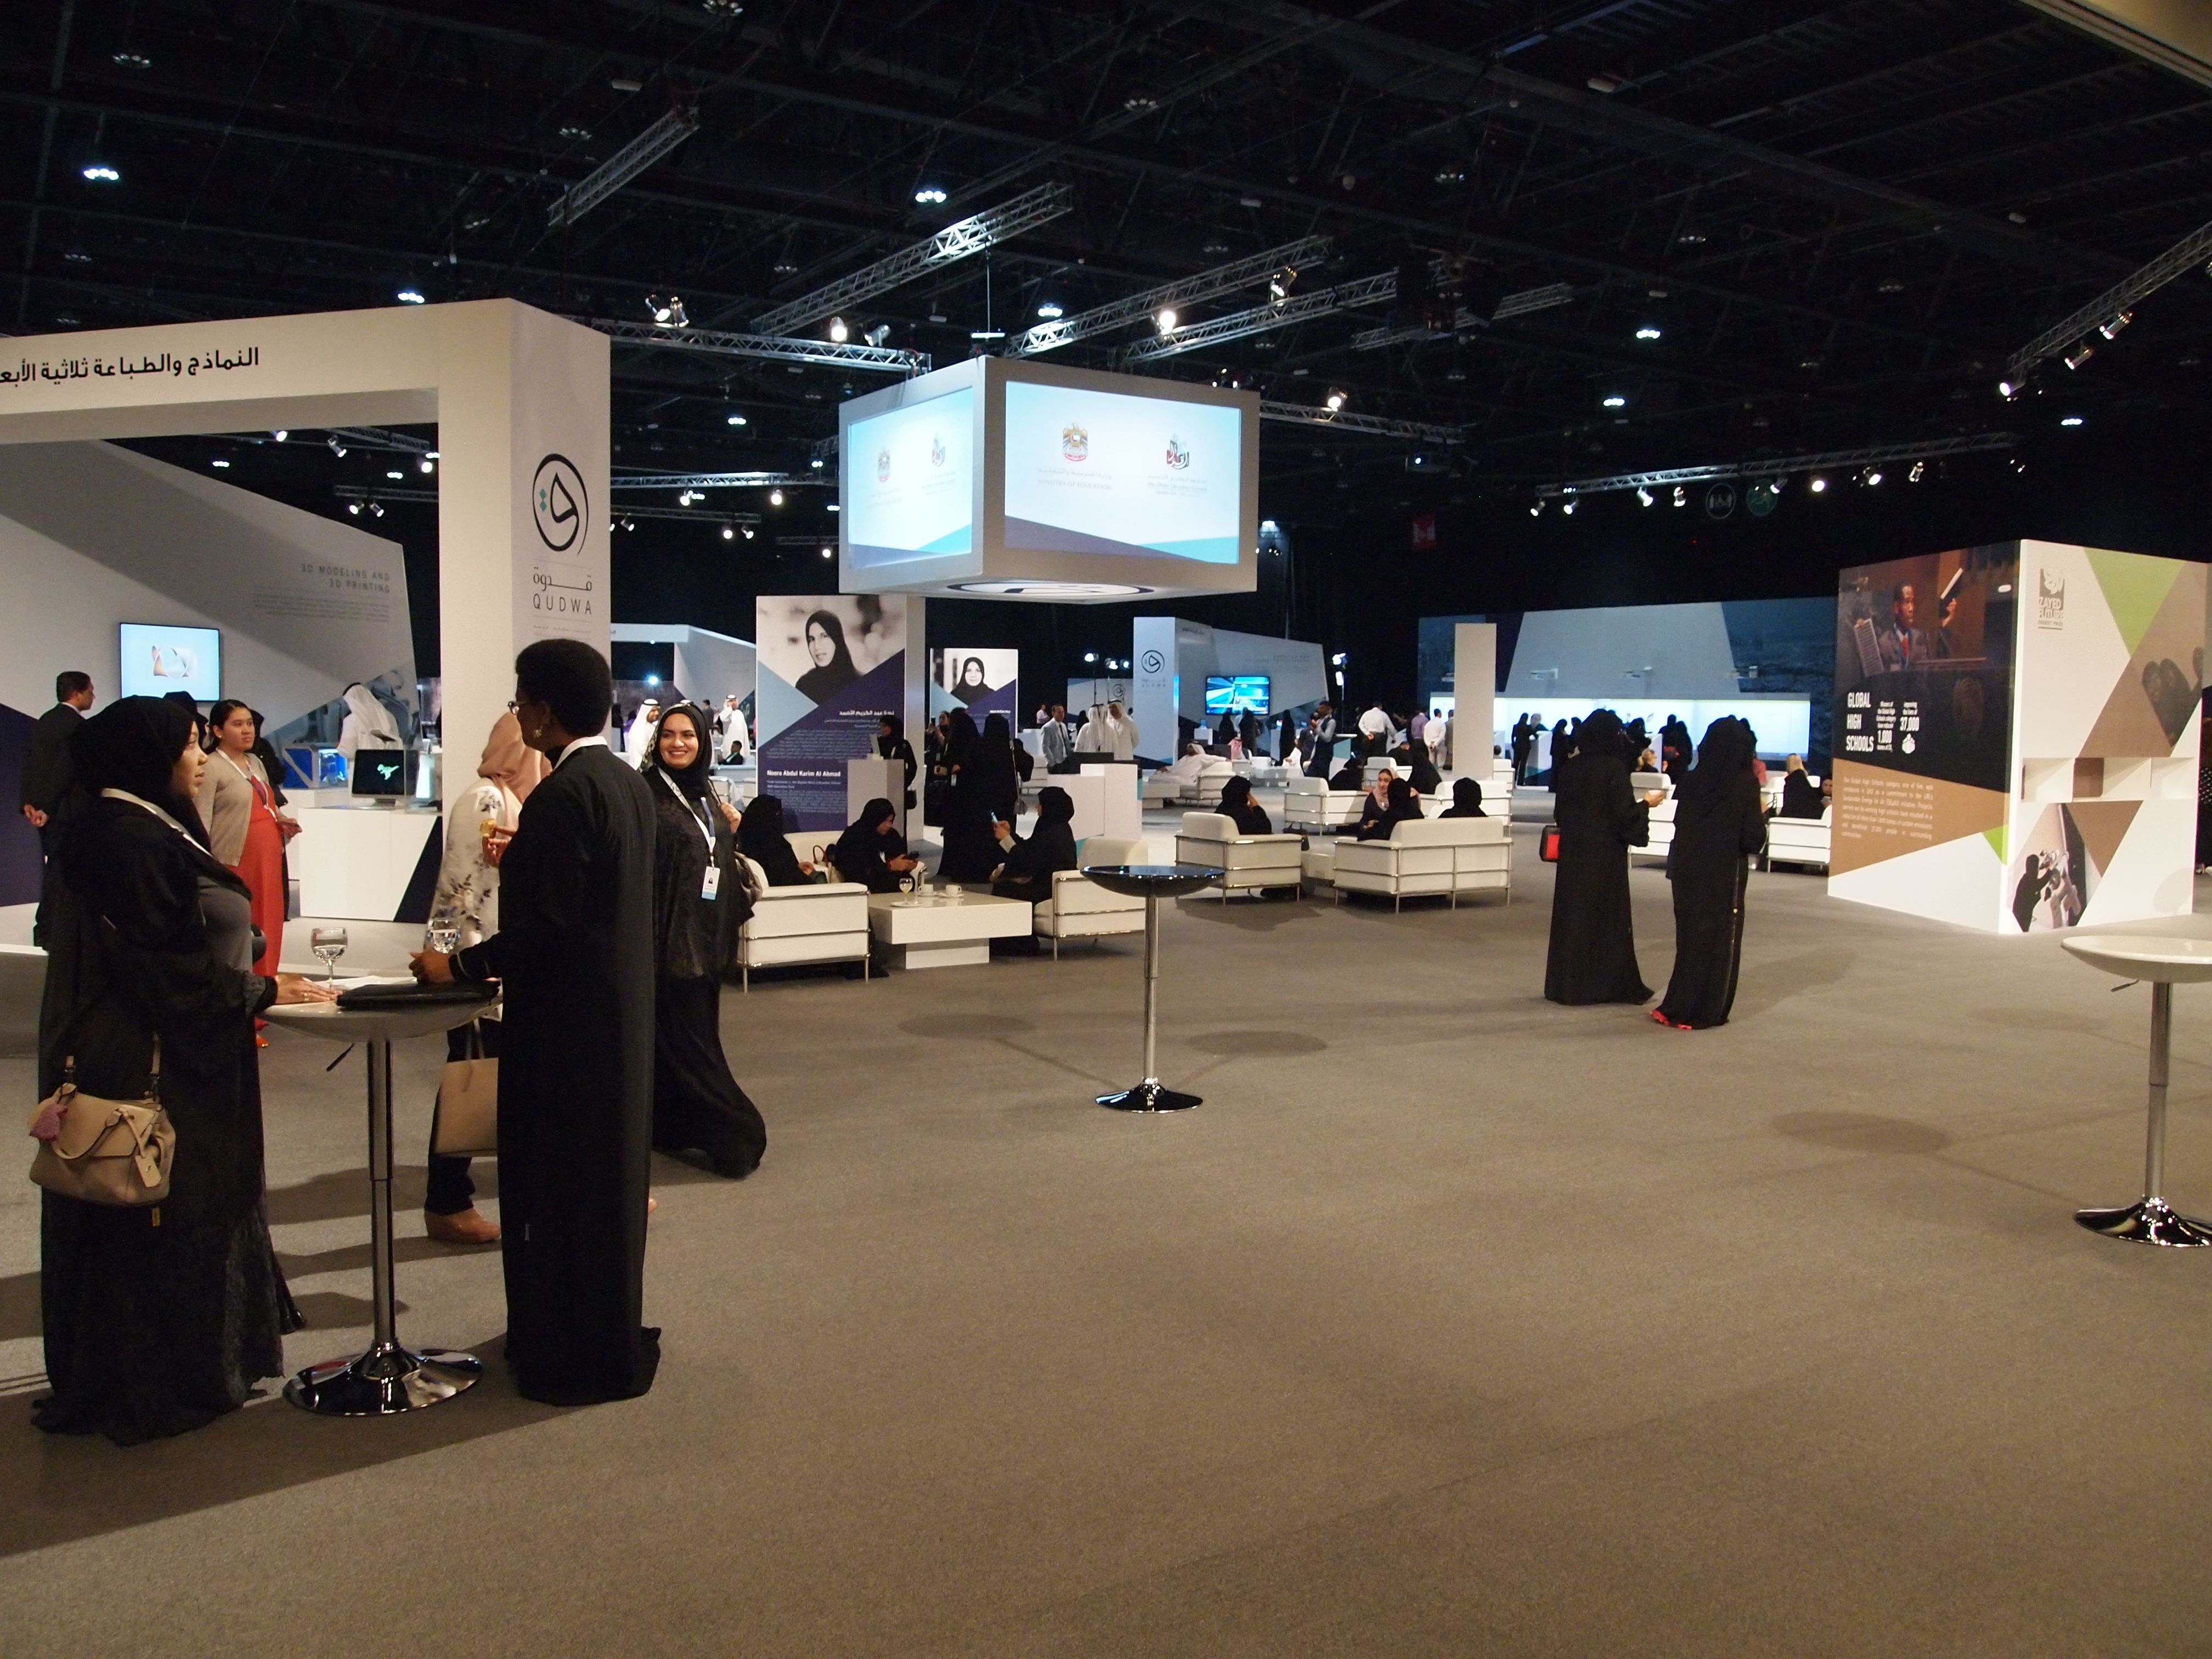 At the Qudwa Teachers' Forum which was held in Abu Dhabi to